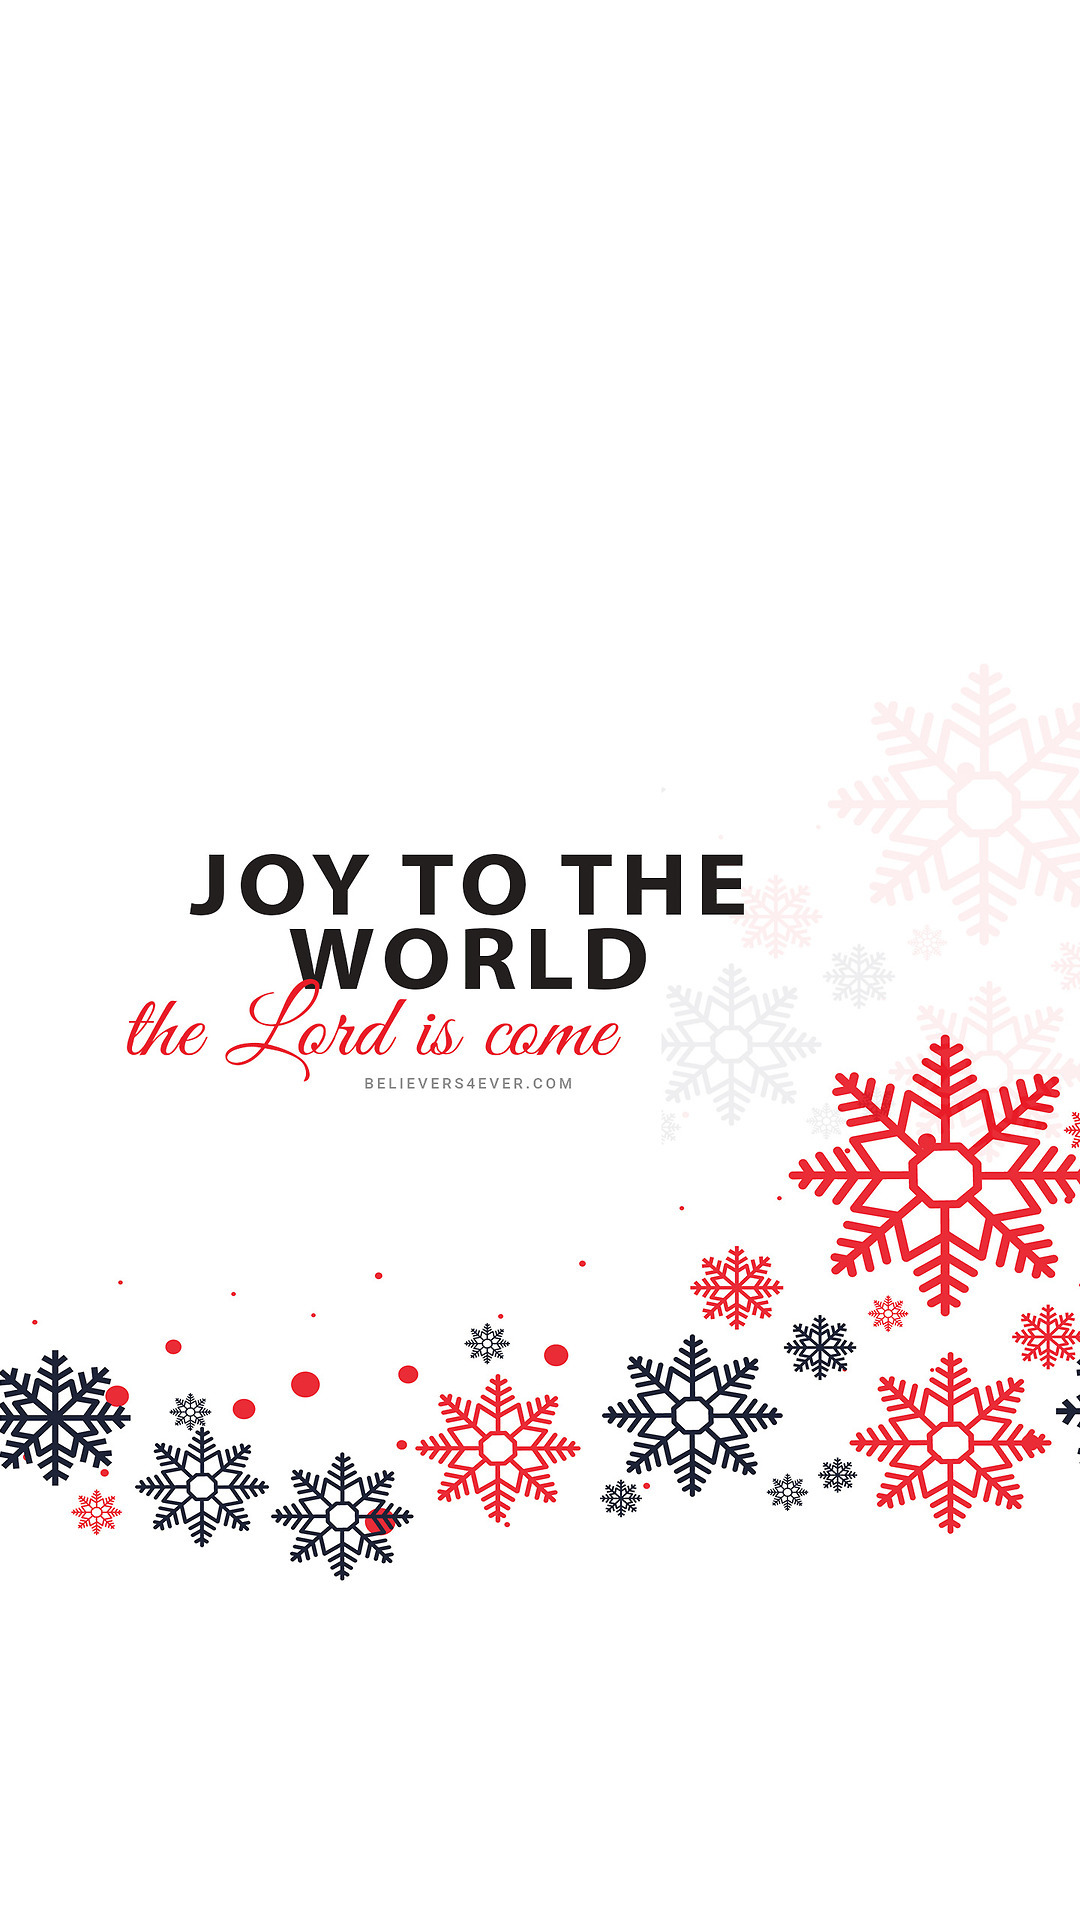 Joy To The World The Lord Is Come - Christmas Joy To The World Background - HD Wallpaper